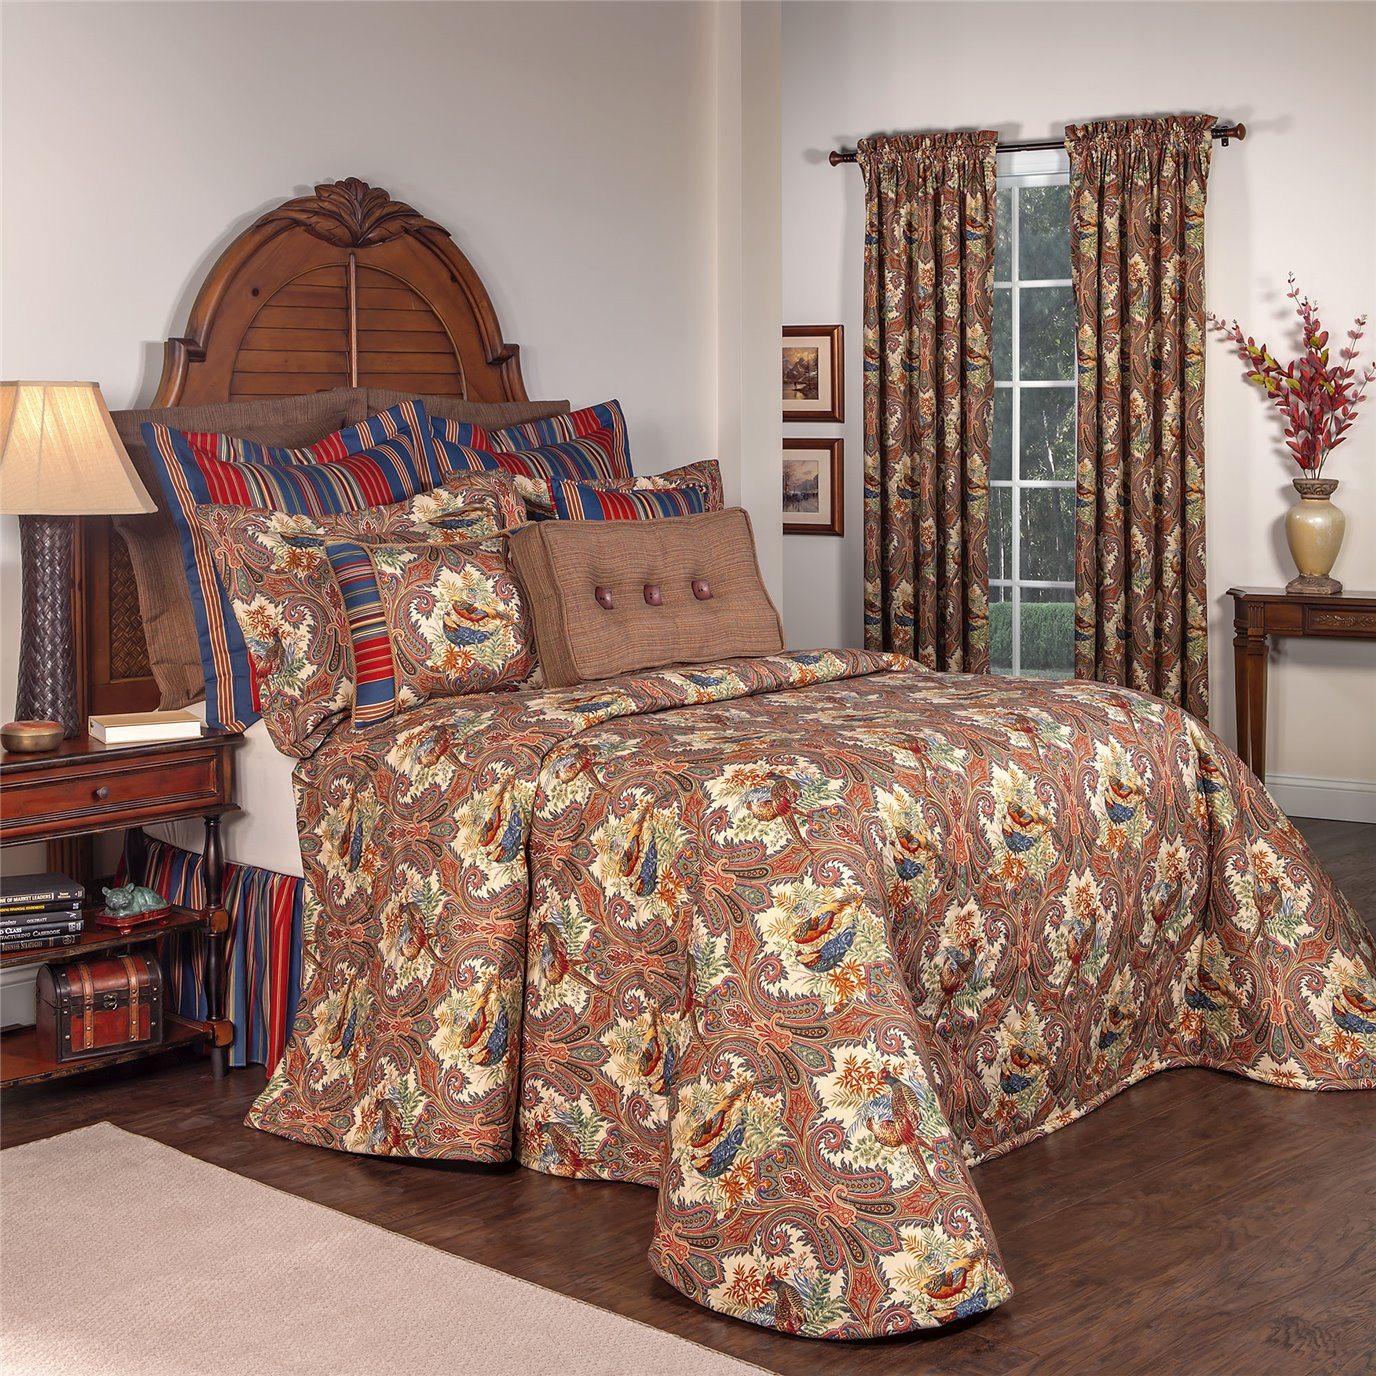 Royal Pheasant King Bedspread